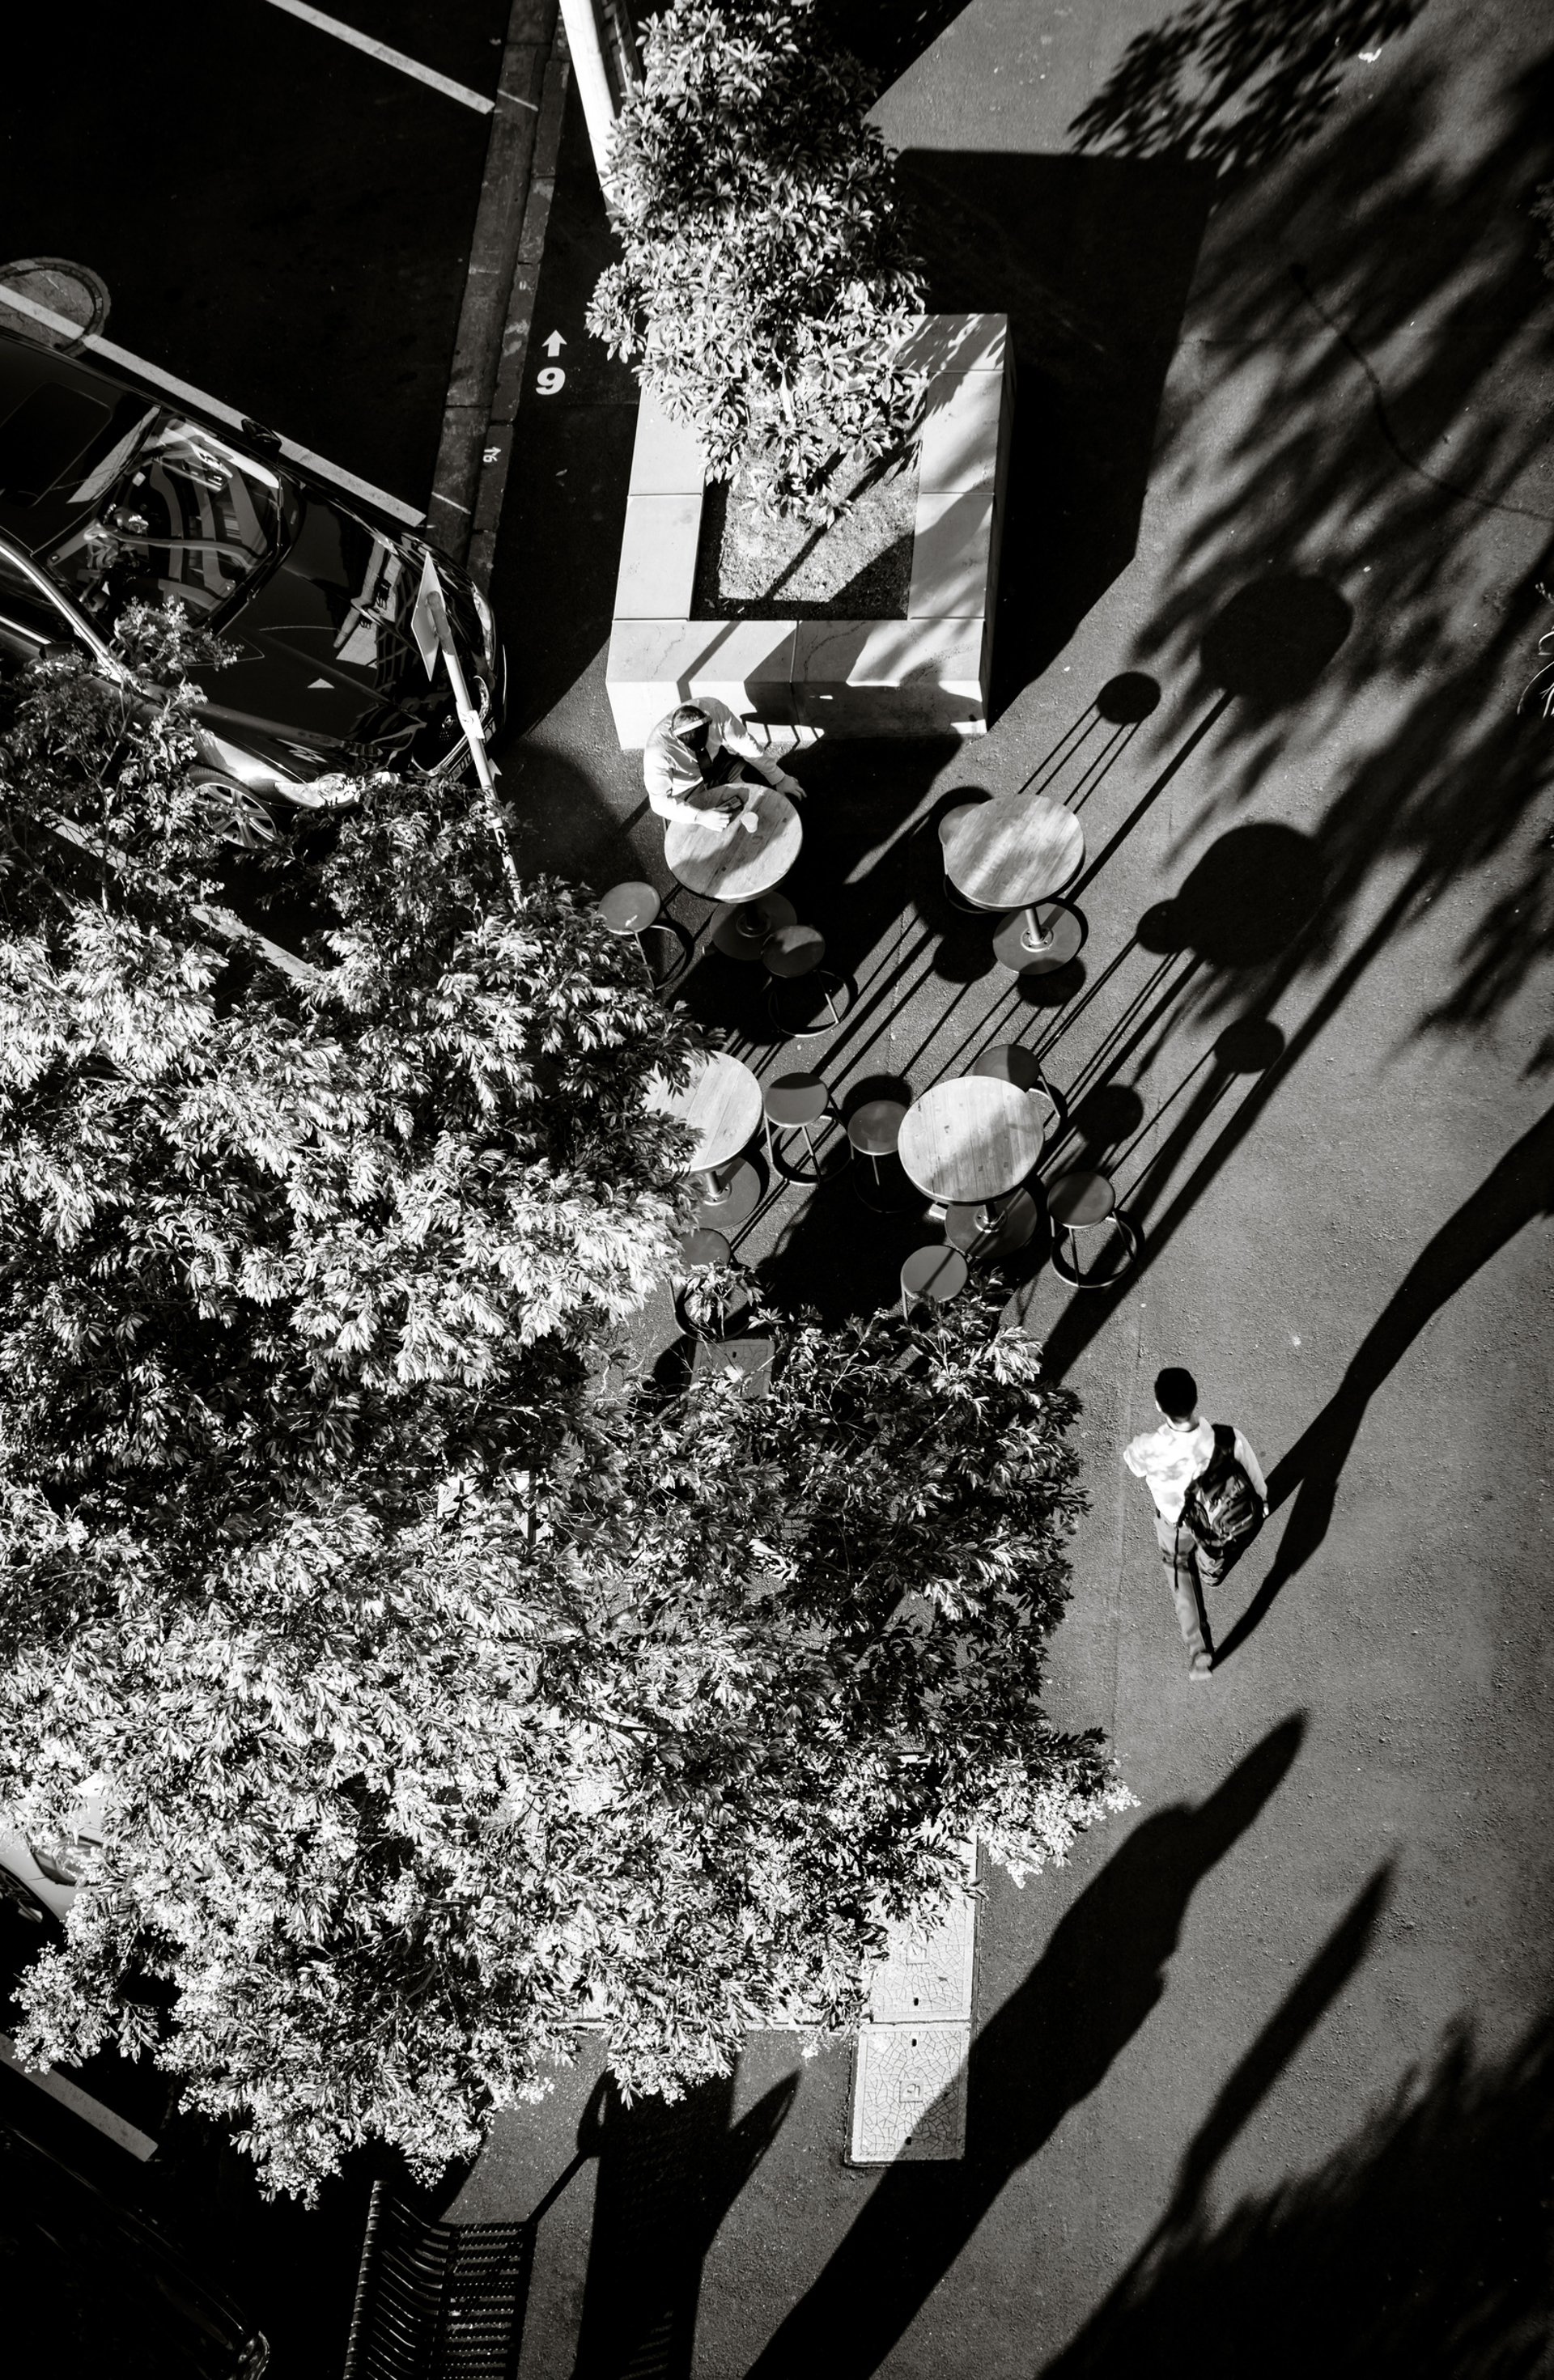 Melbourne Shadows by Alex Nyerges